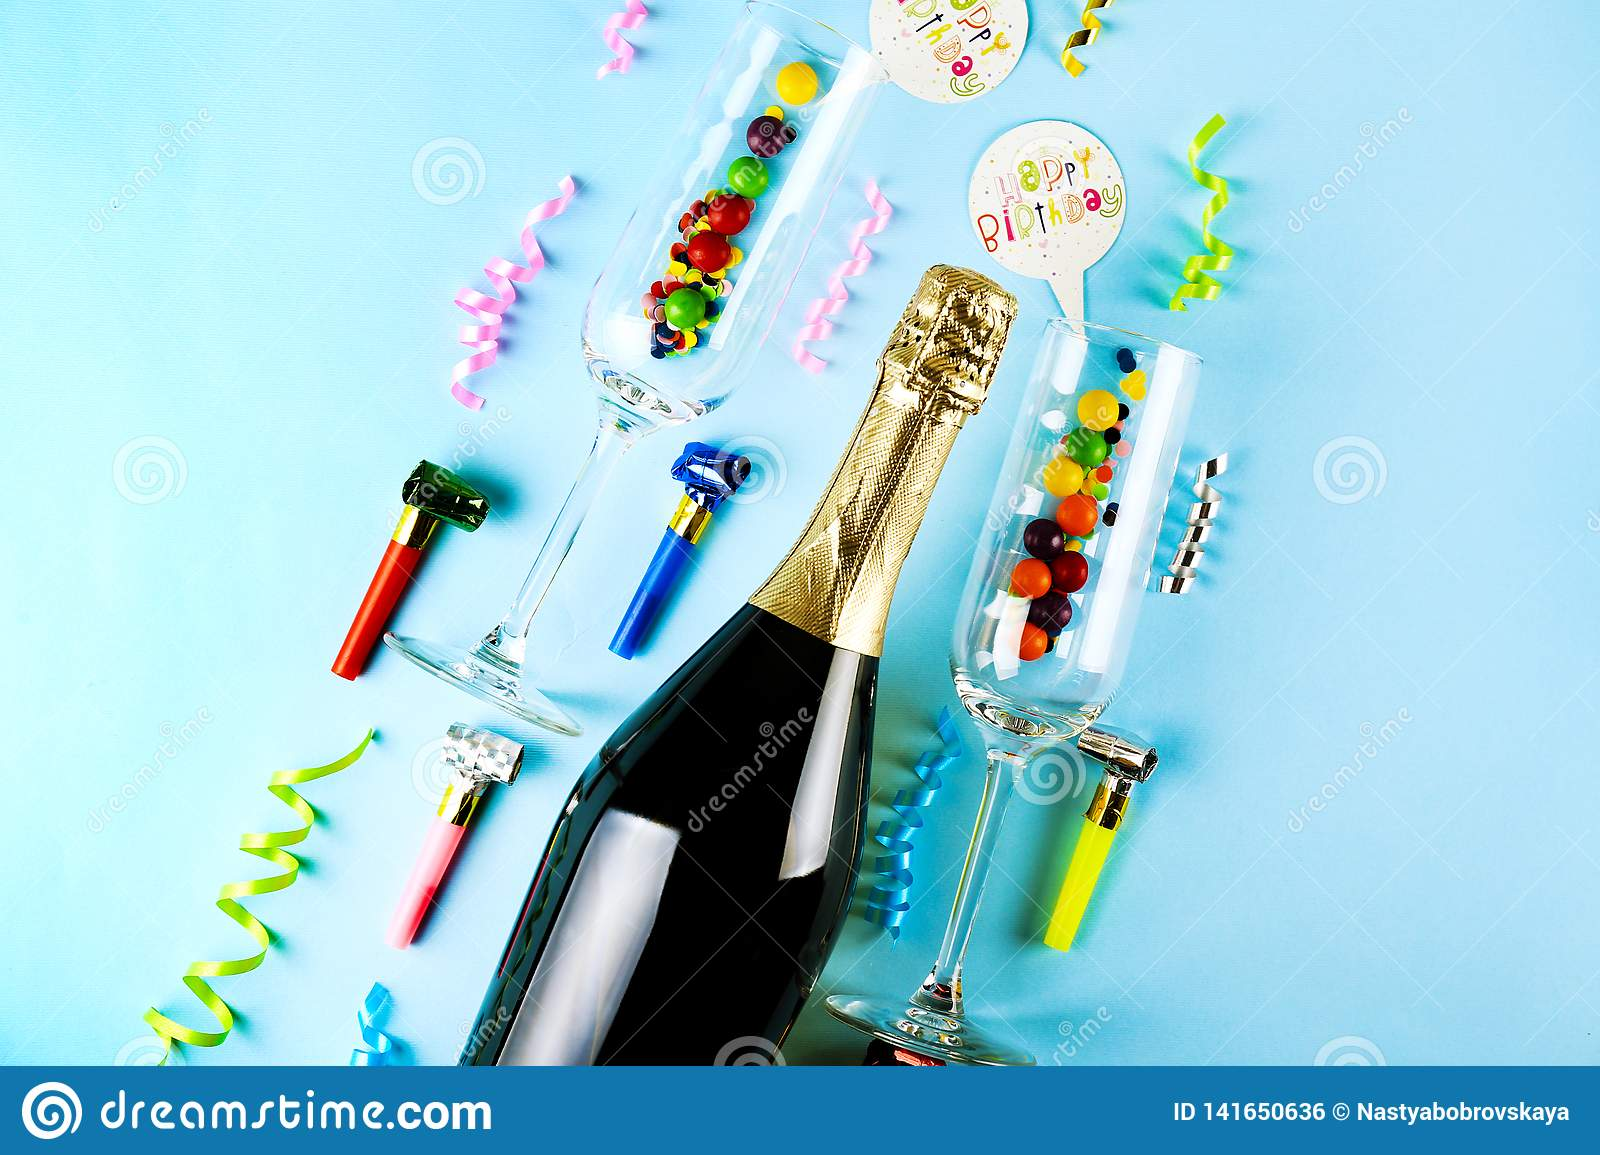 Bottle of champagne, pair of flute glasses, streamers, candles & other party attributes on bright pink paper background. Speech